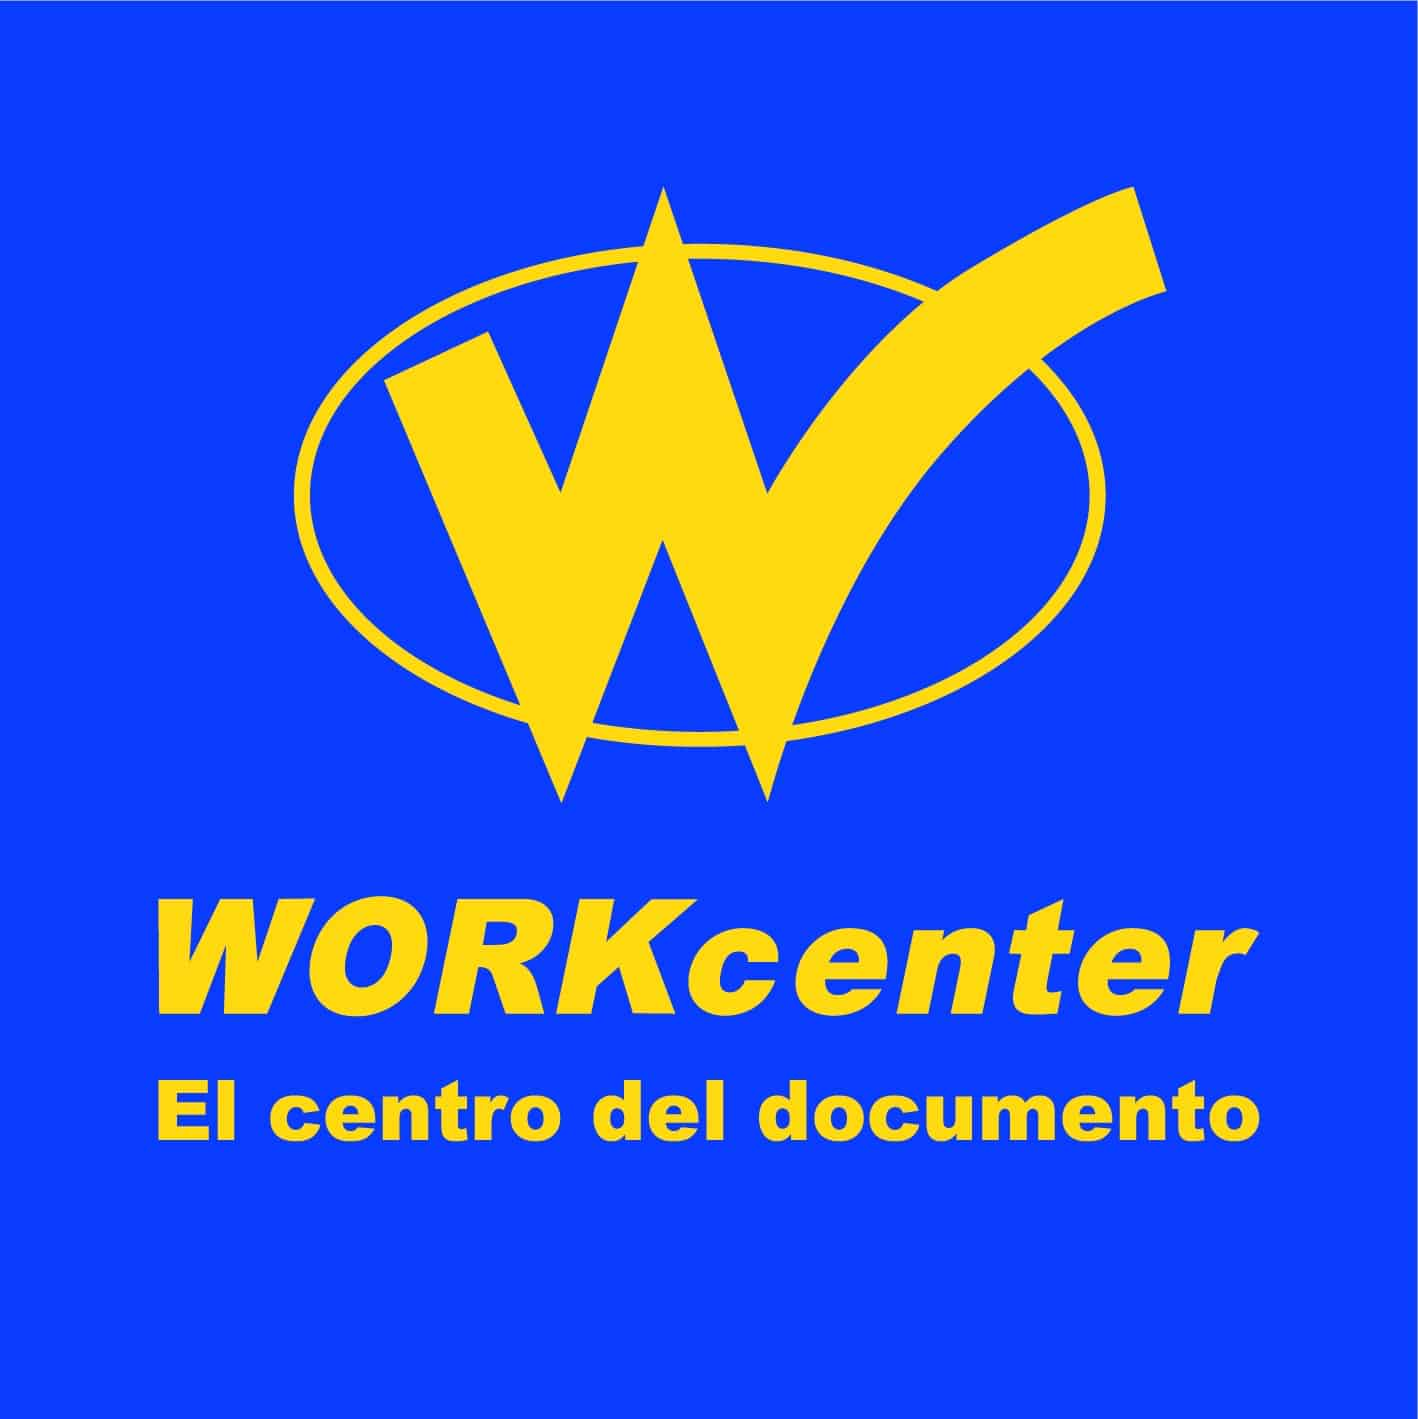 "<span style=""color:red;"">Save money on printing & office supplies </span><br />WorkCenter: Madrid's popular print & office supply shop!"